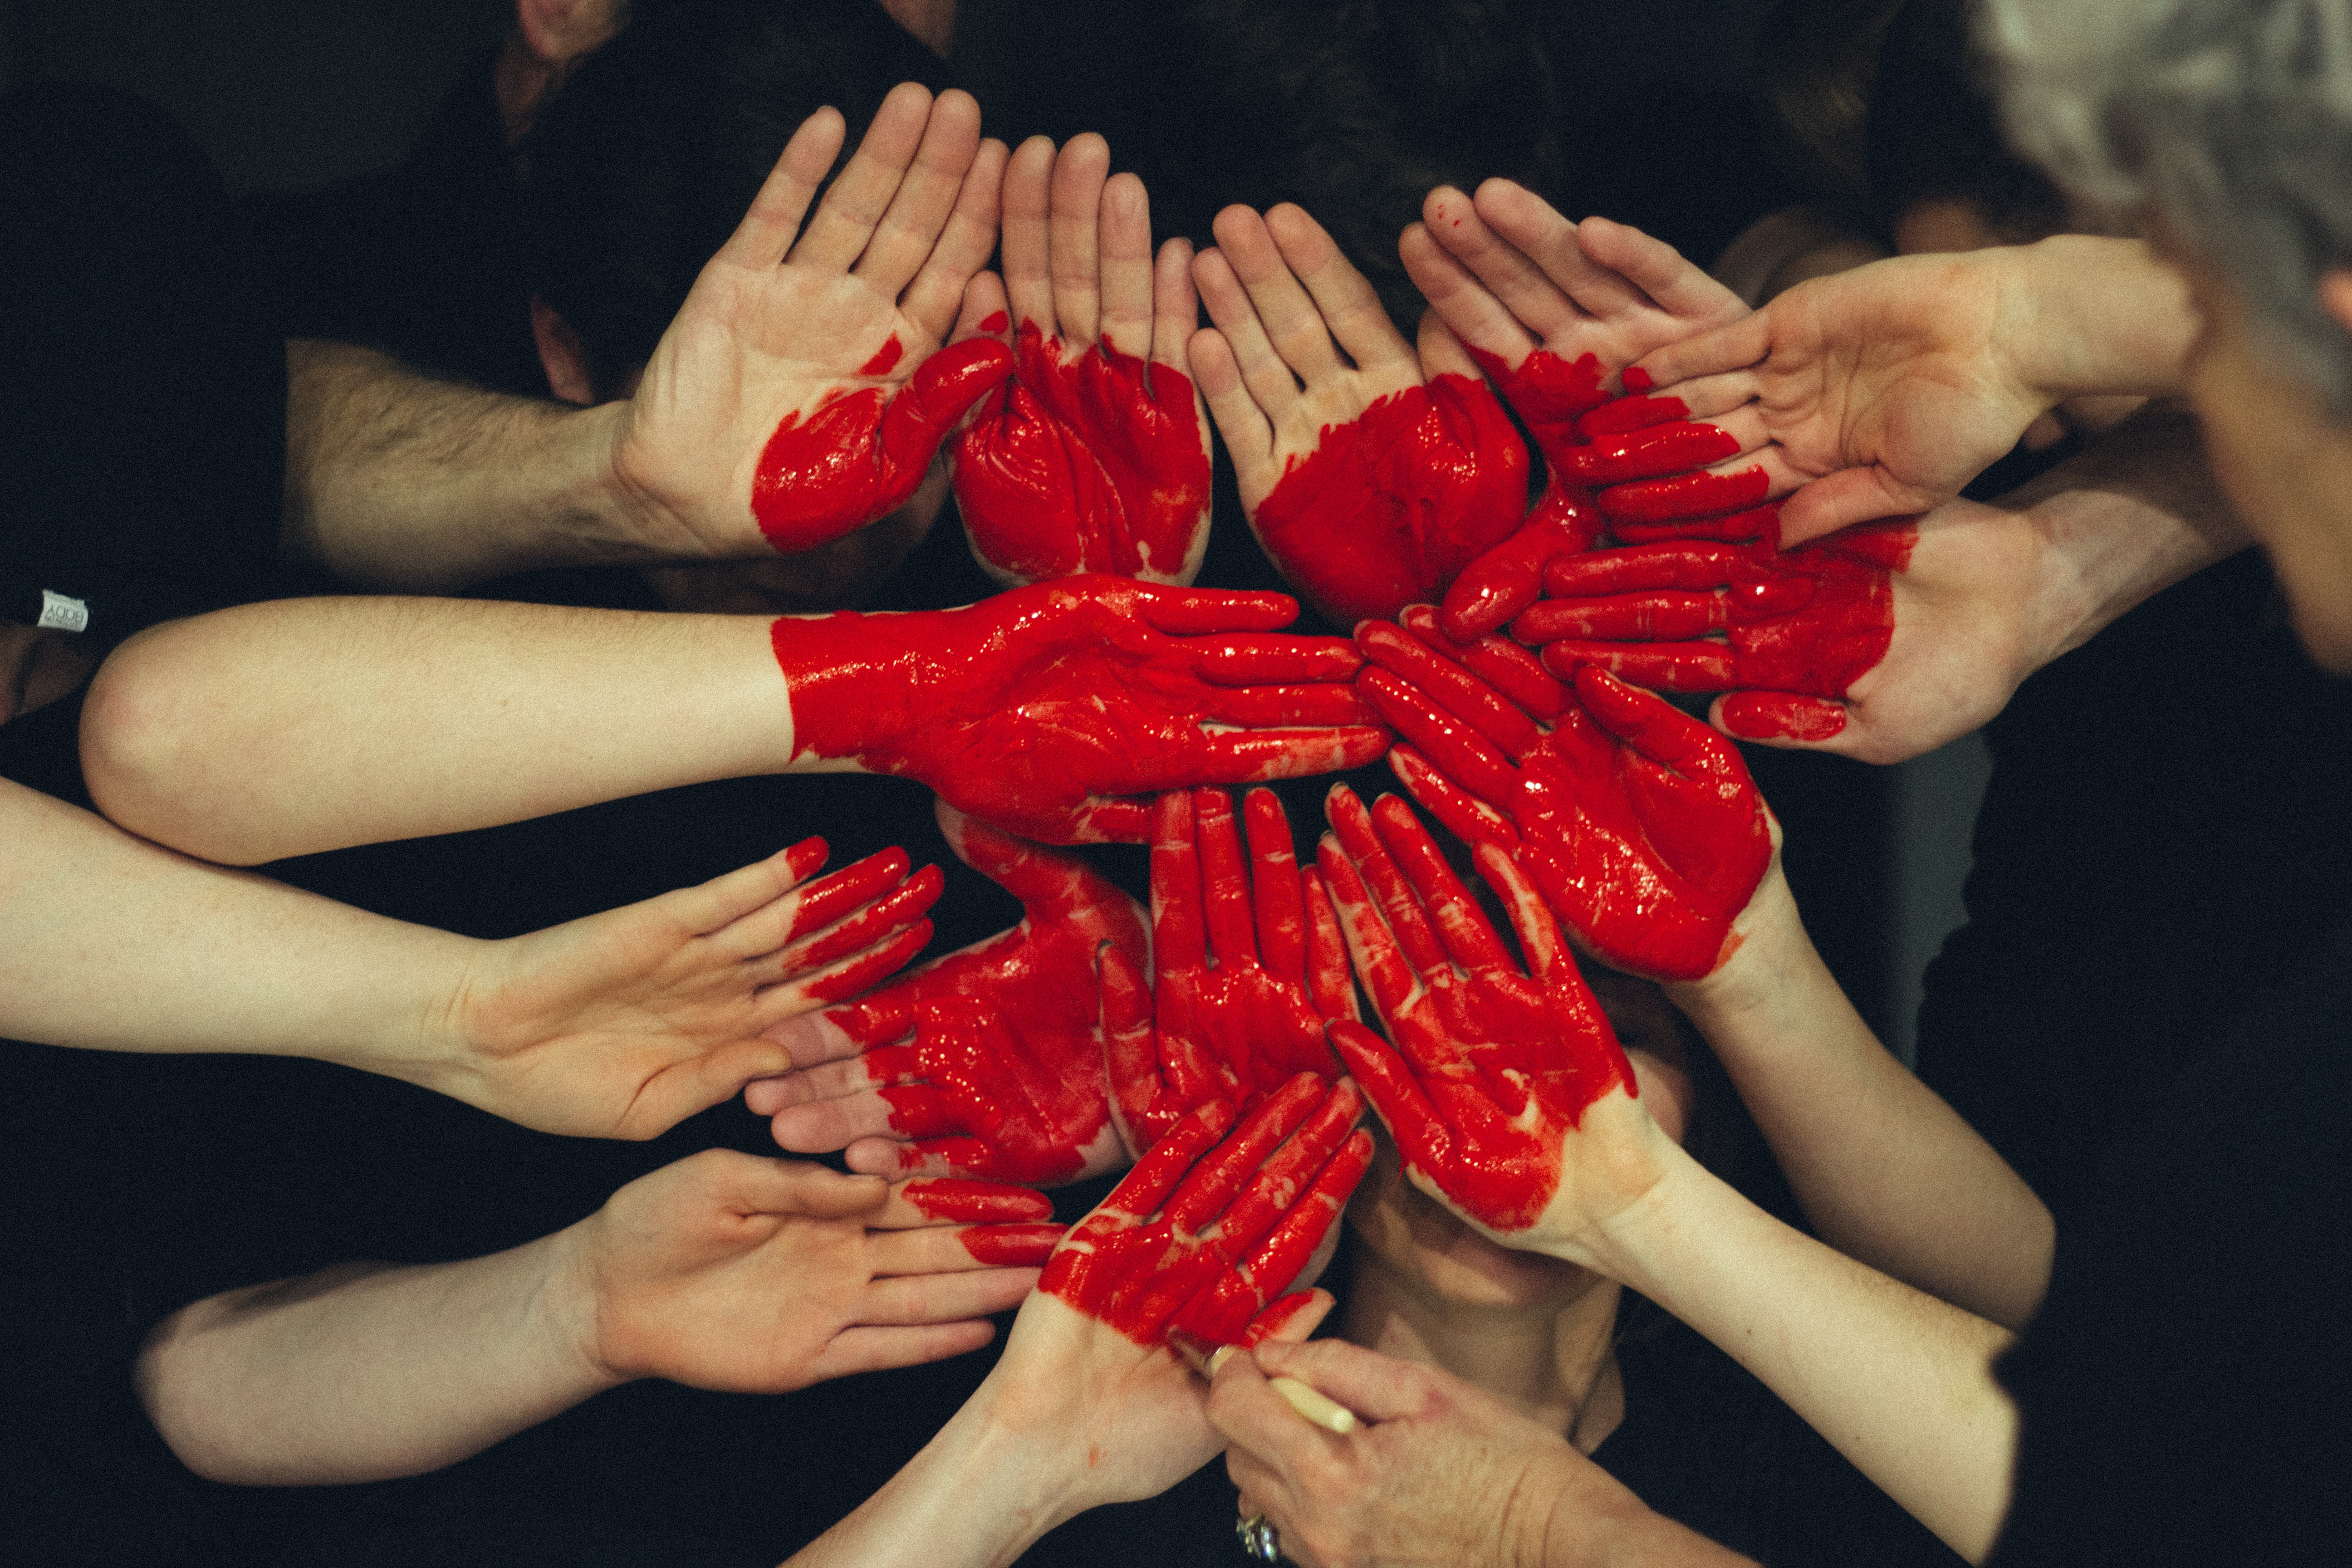 joined hands with red painted heart